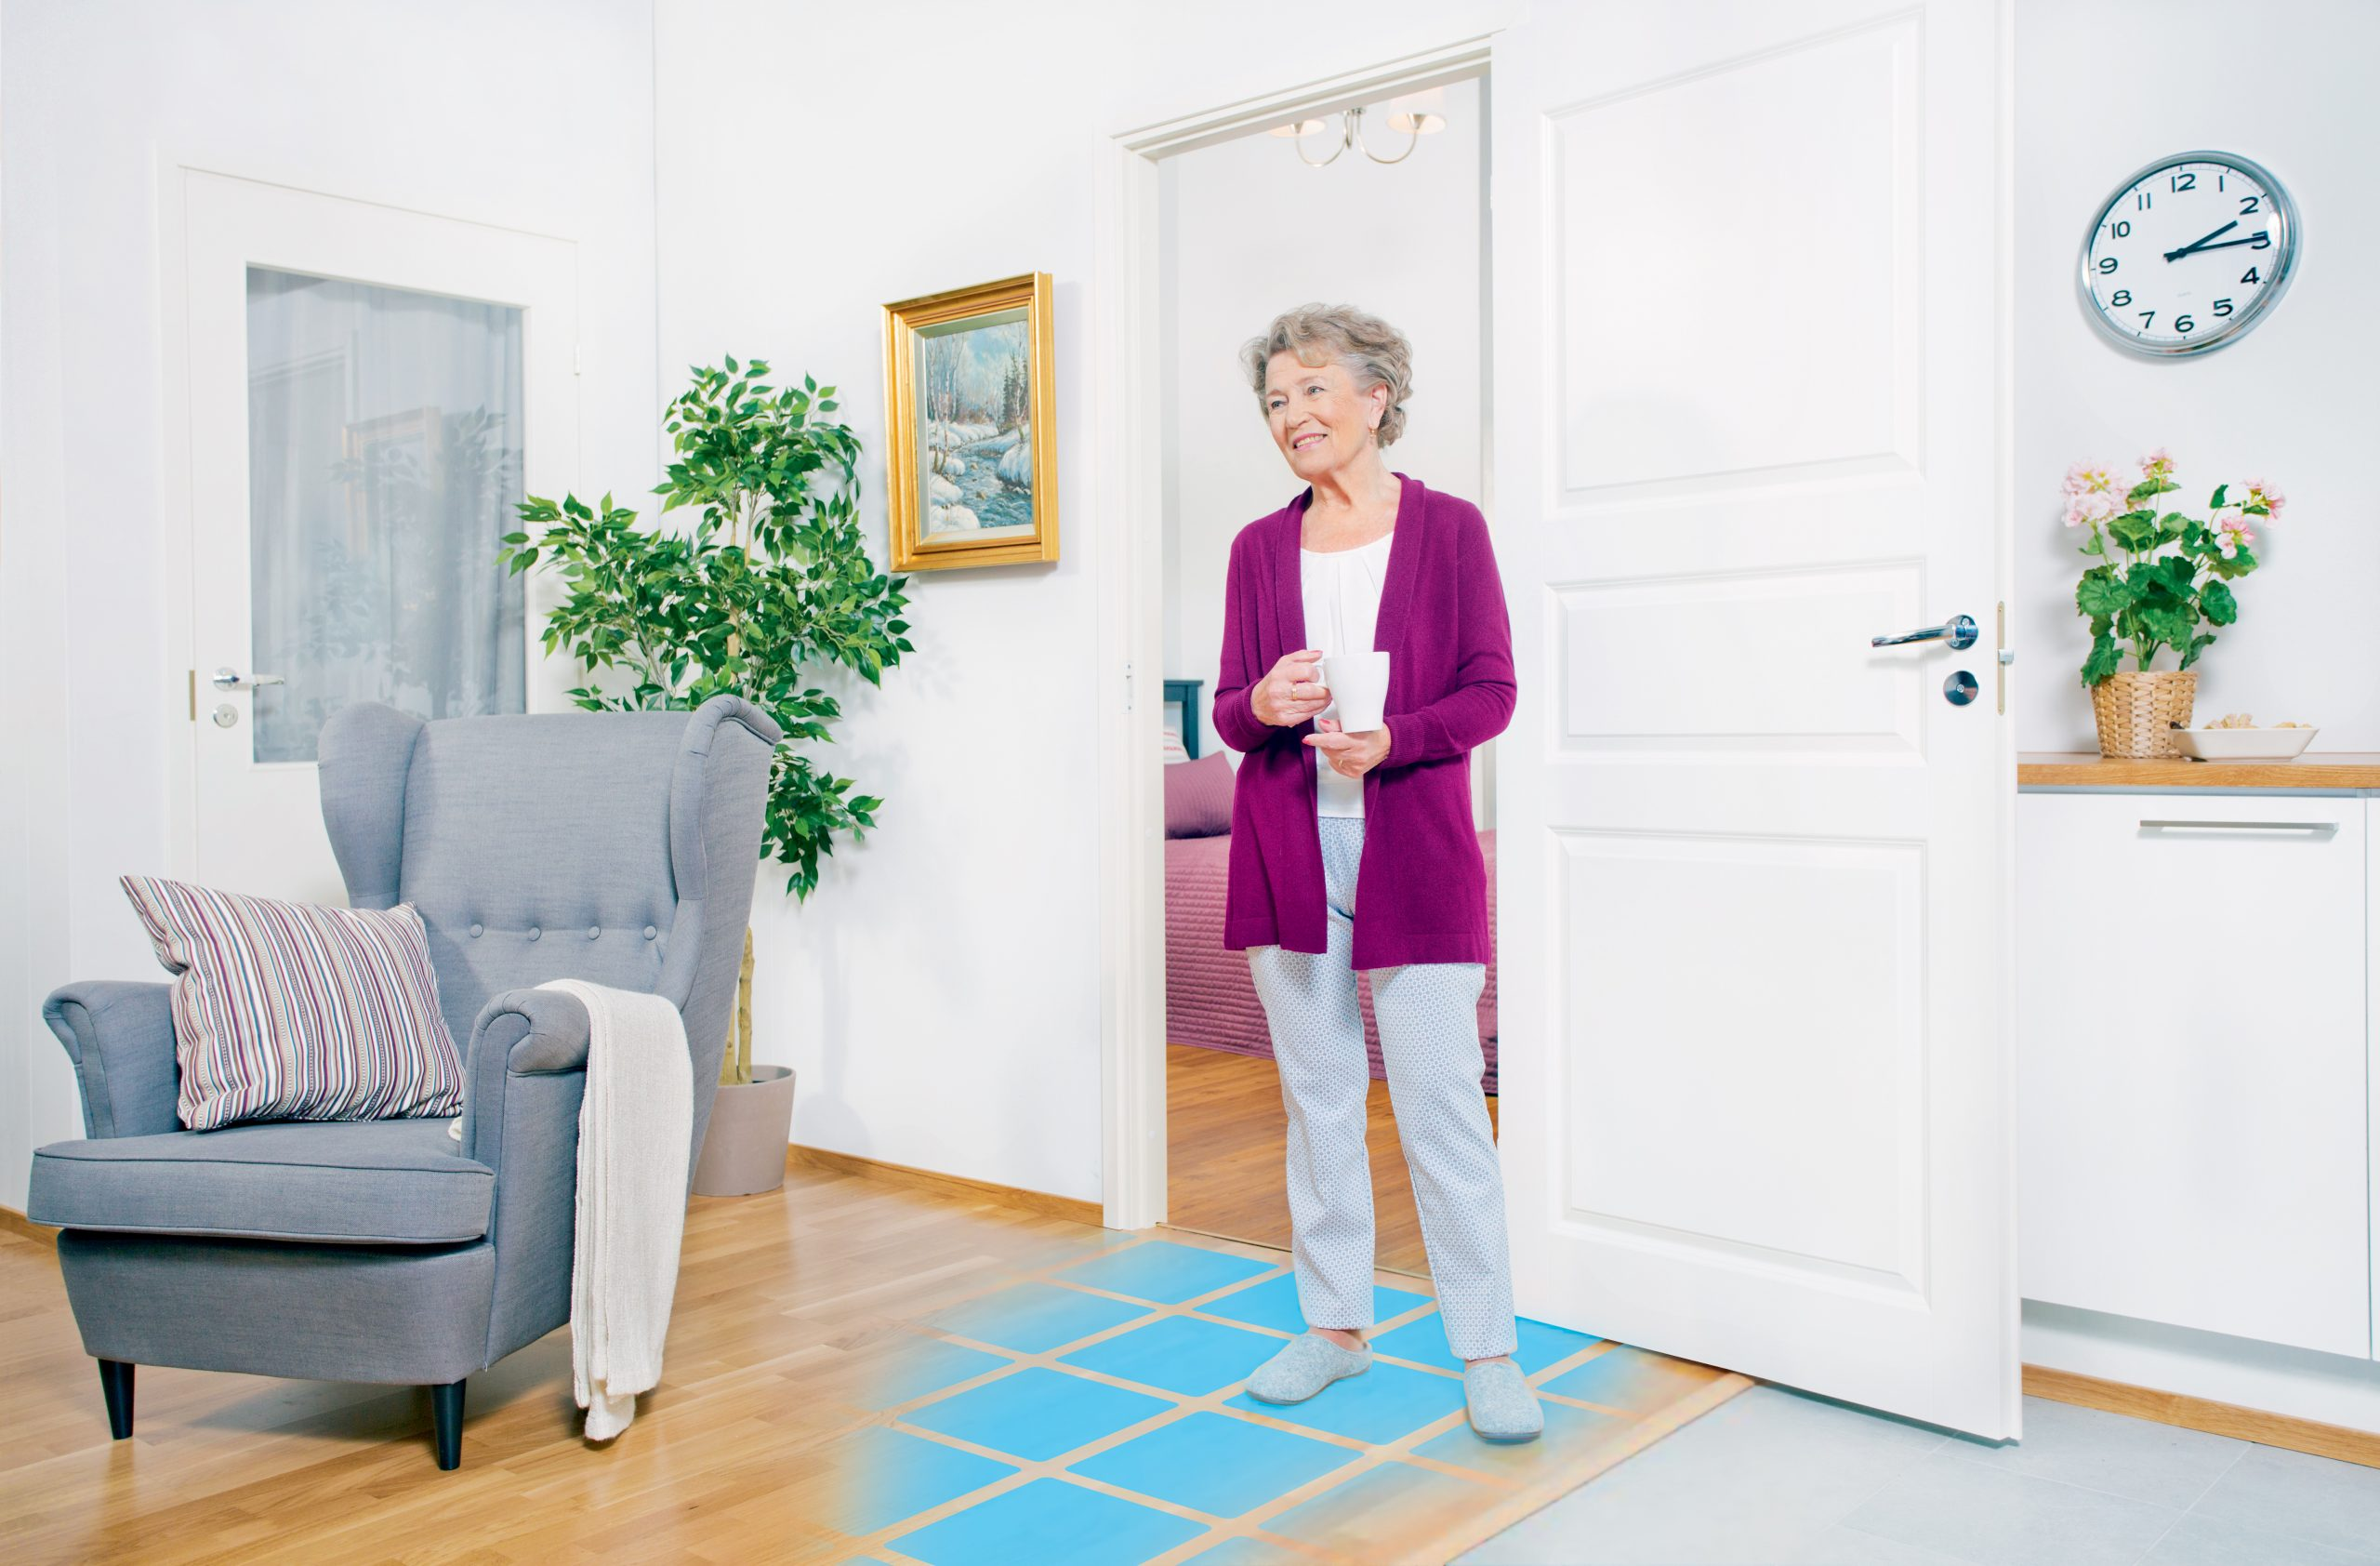 Smart floor systems for health care and nursing homes